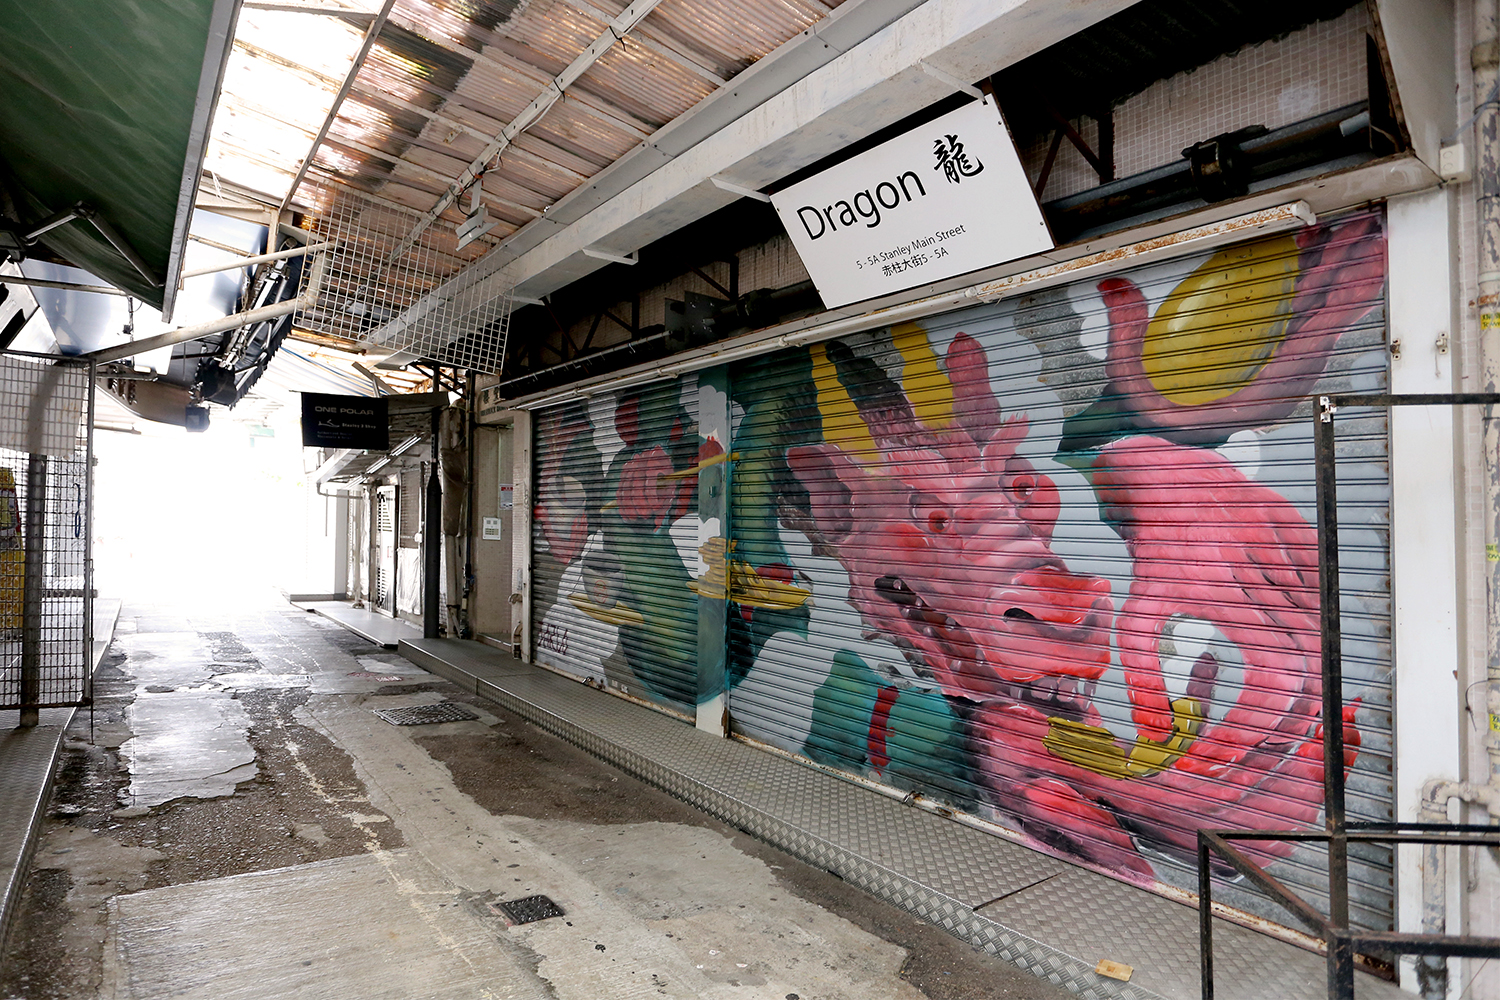 barlo-new-shutter-at-stanley-market-hong-kong-09